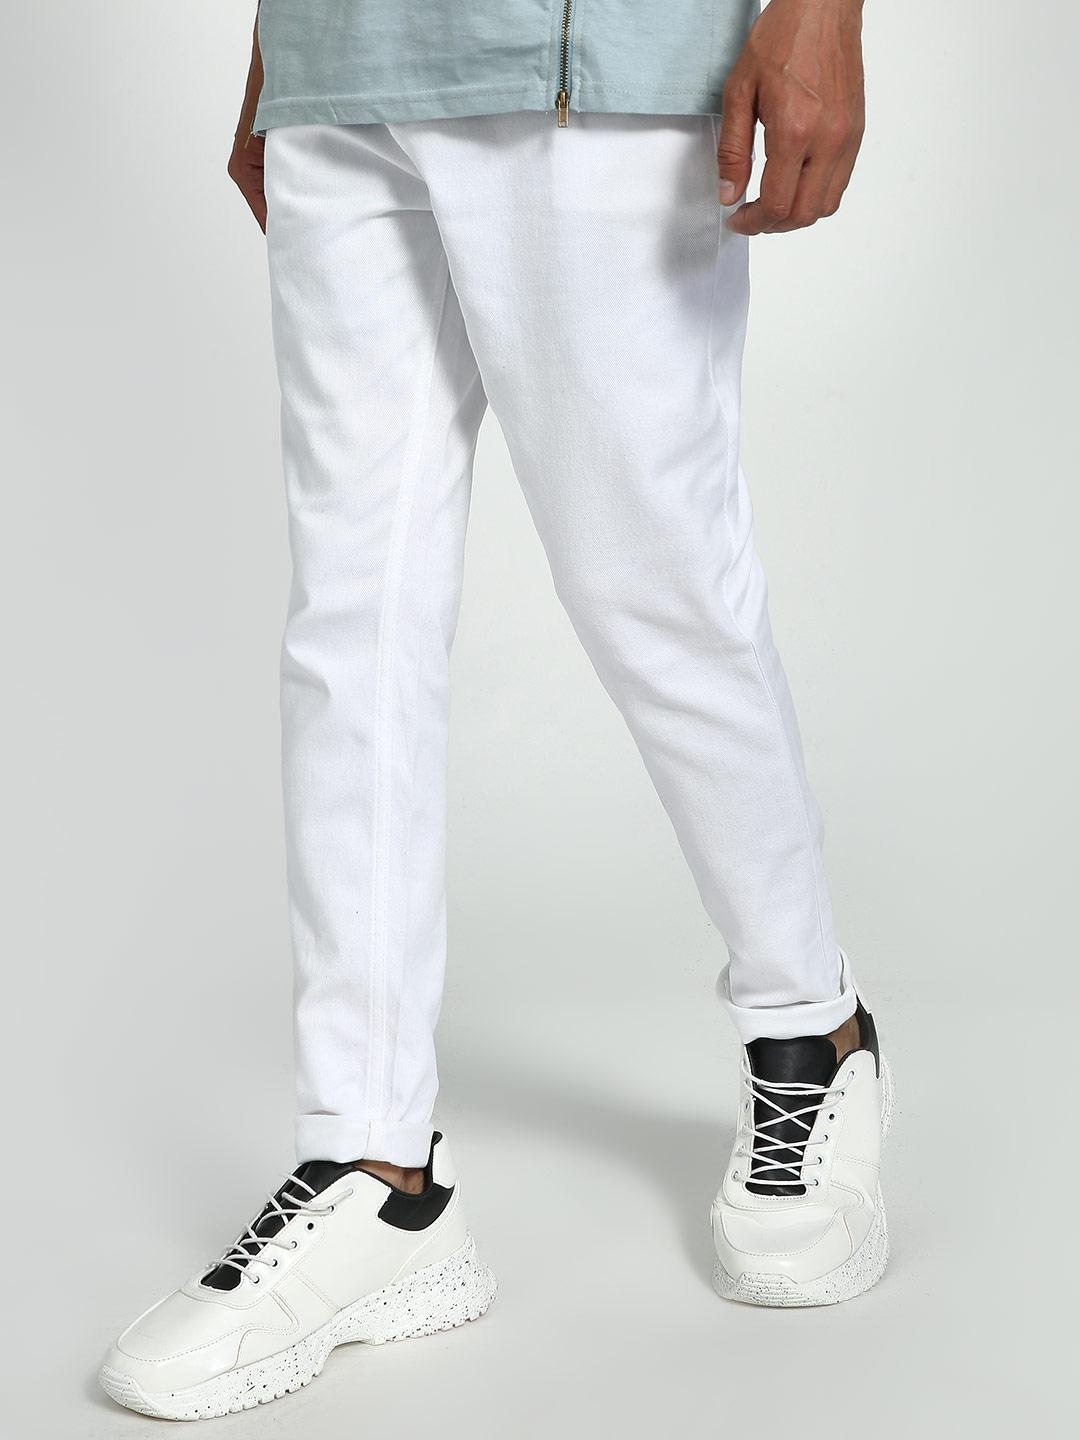 K Denim White KOOVS Slim Fit Jeans 1